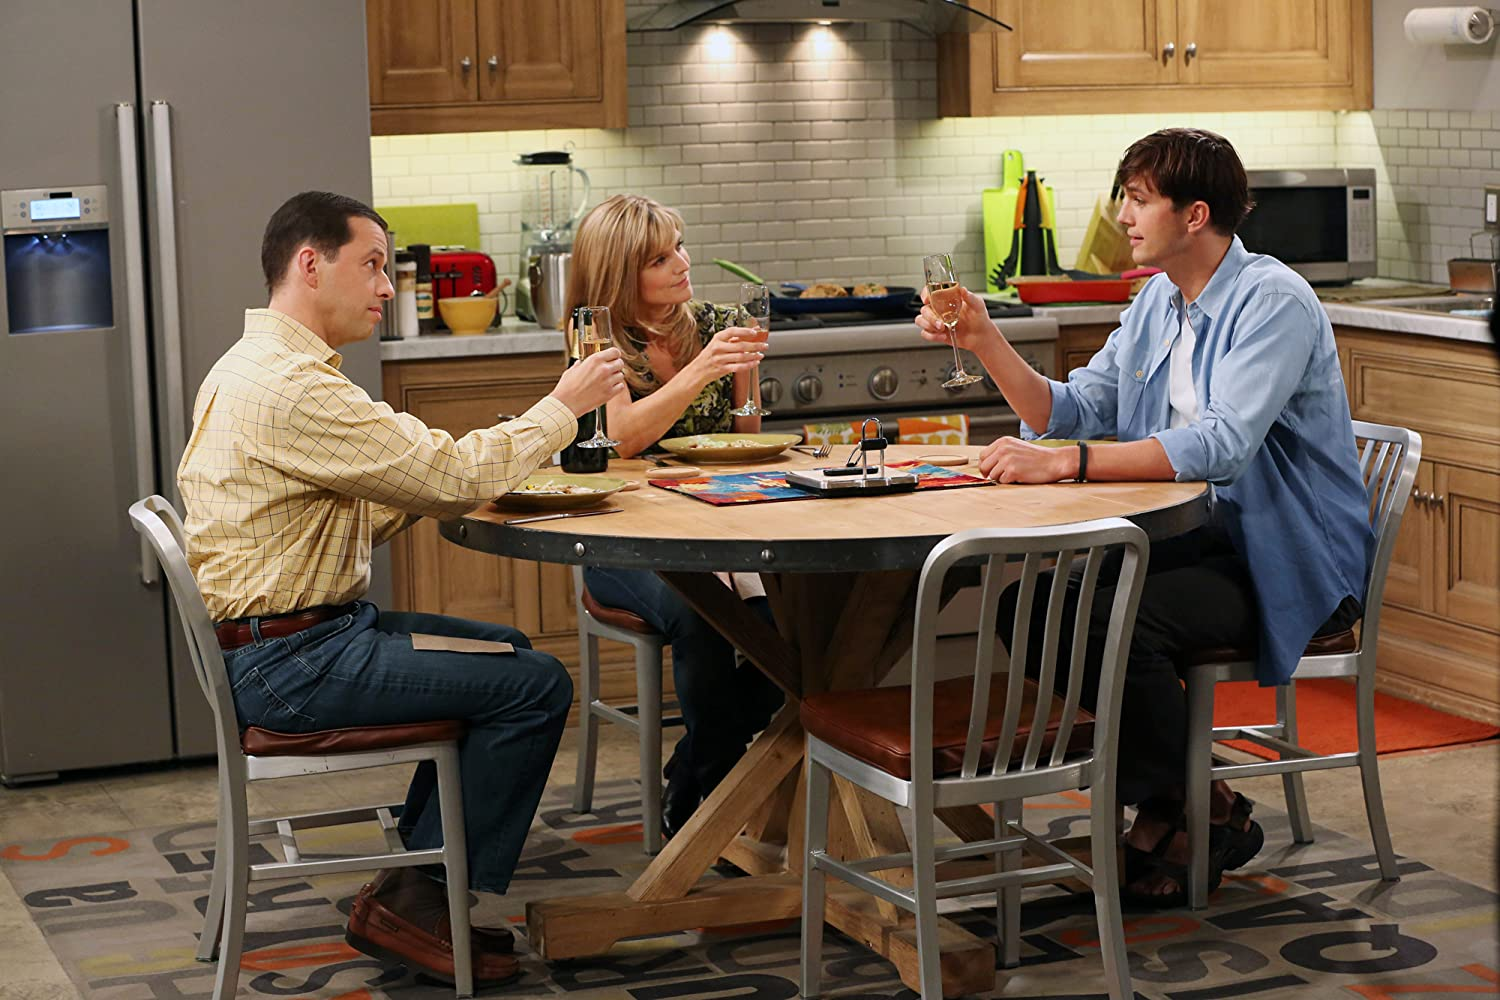 Jon Cryer, Ashton Kutcher, and Courtney Thorne-Smith in Two and a Half Men (2003)